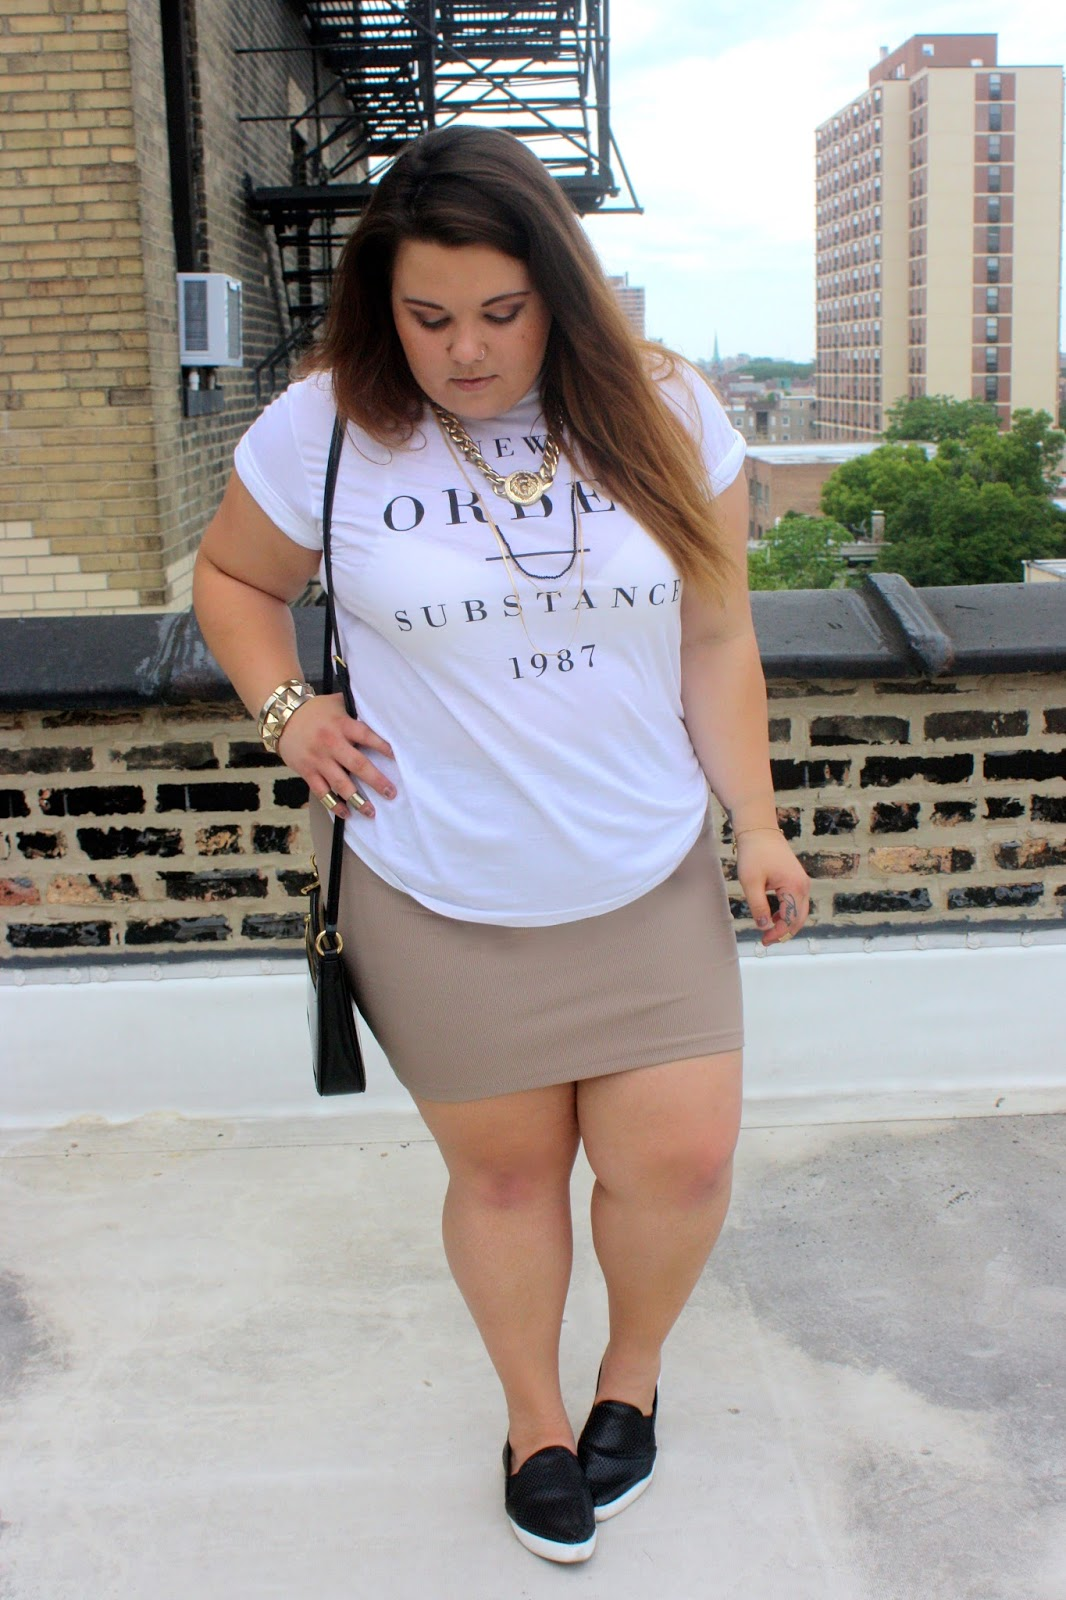 Street style, leather sneakers, steve madden, natalie craig, natalie in the city, chicago, versace necklace, gold accessories, summer trends 2015, perforated sneakers, plus size, plus size fashion blogger, fashion blogger, outfit of the day, ootd